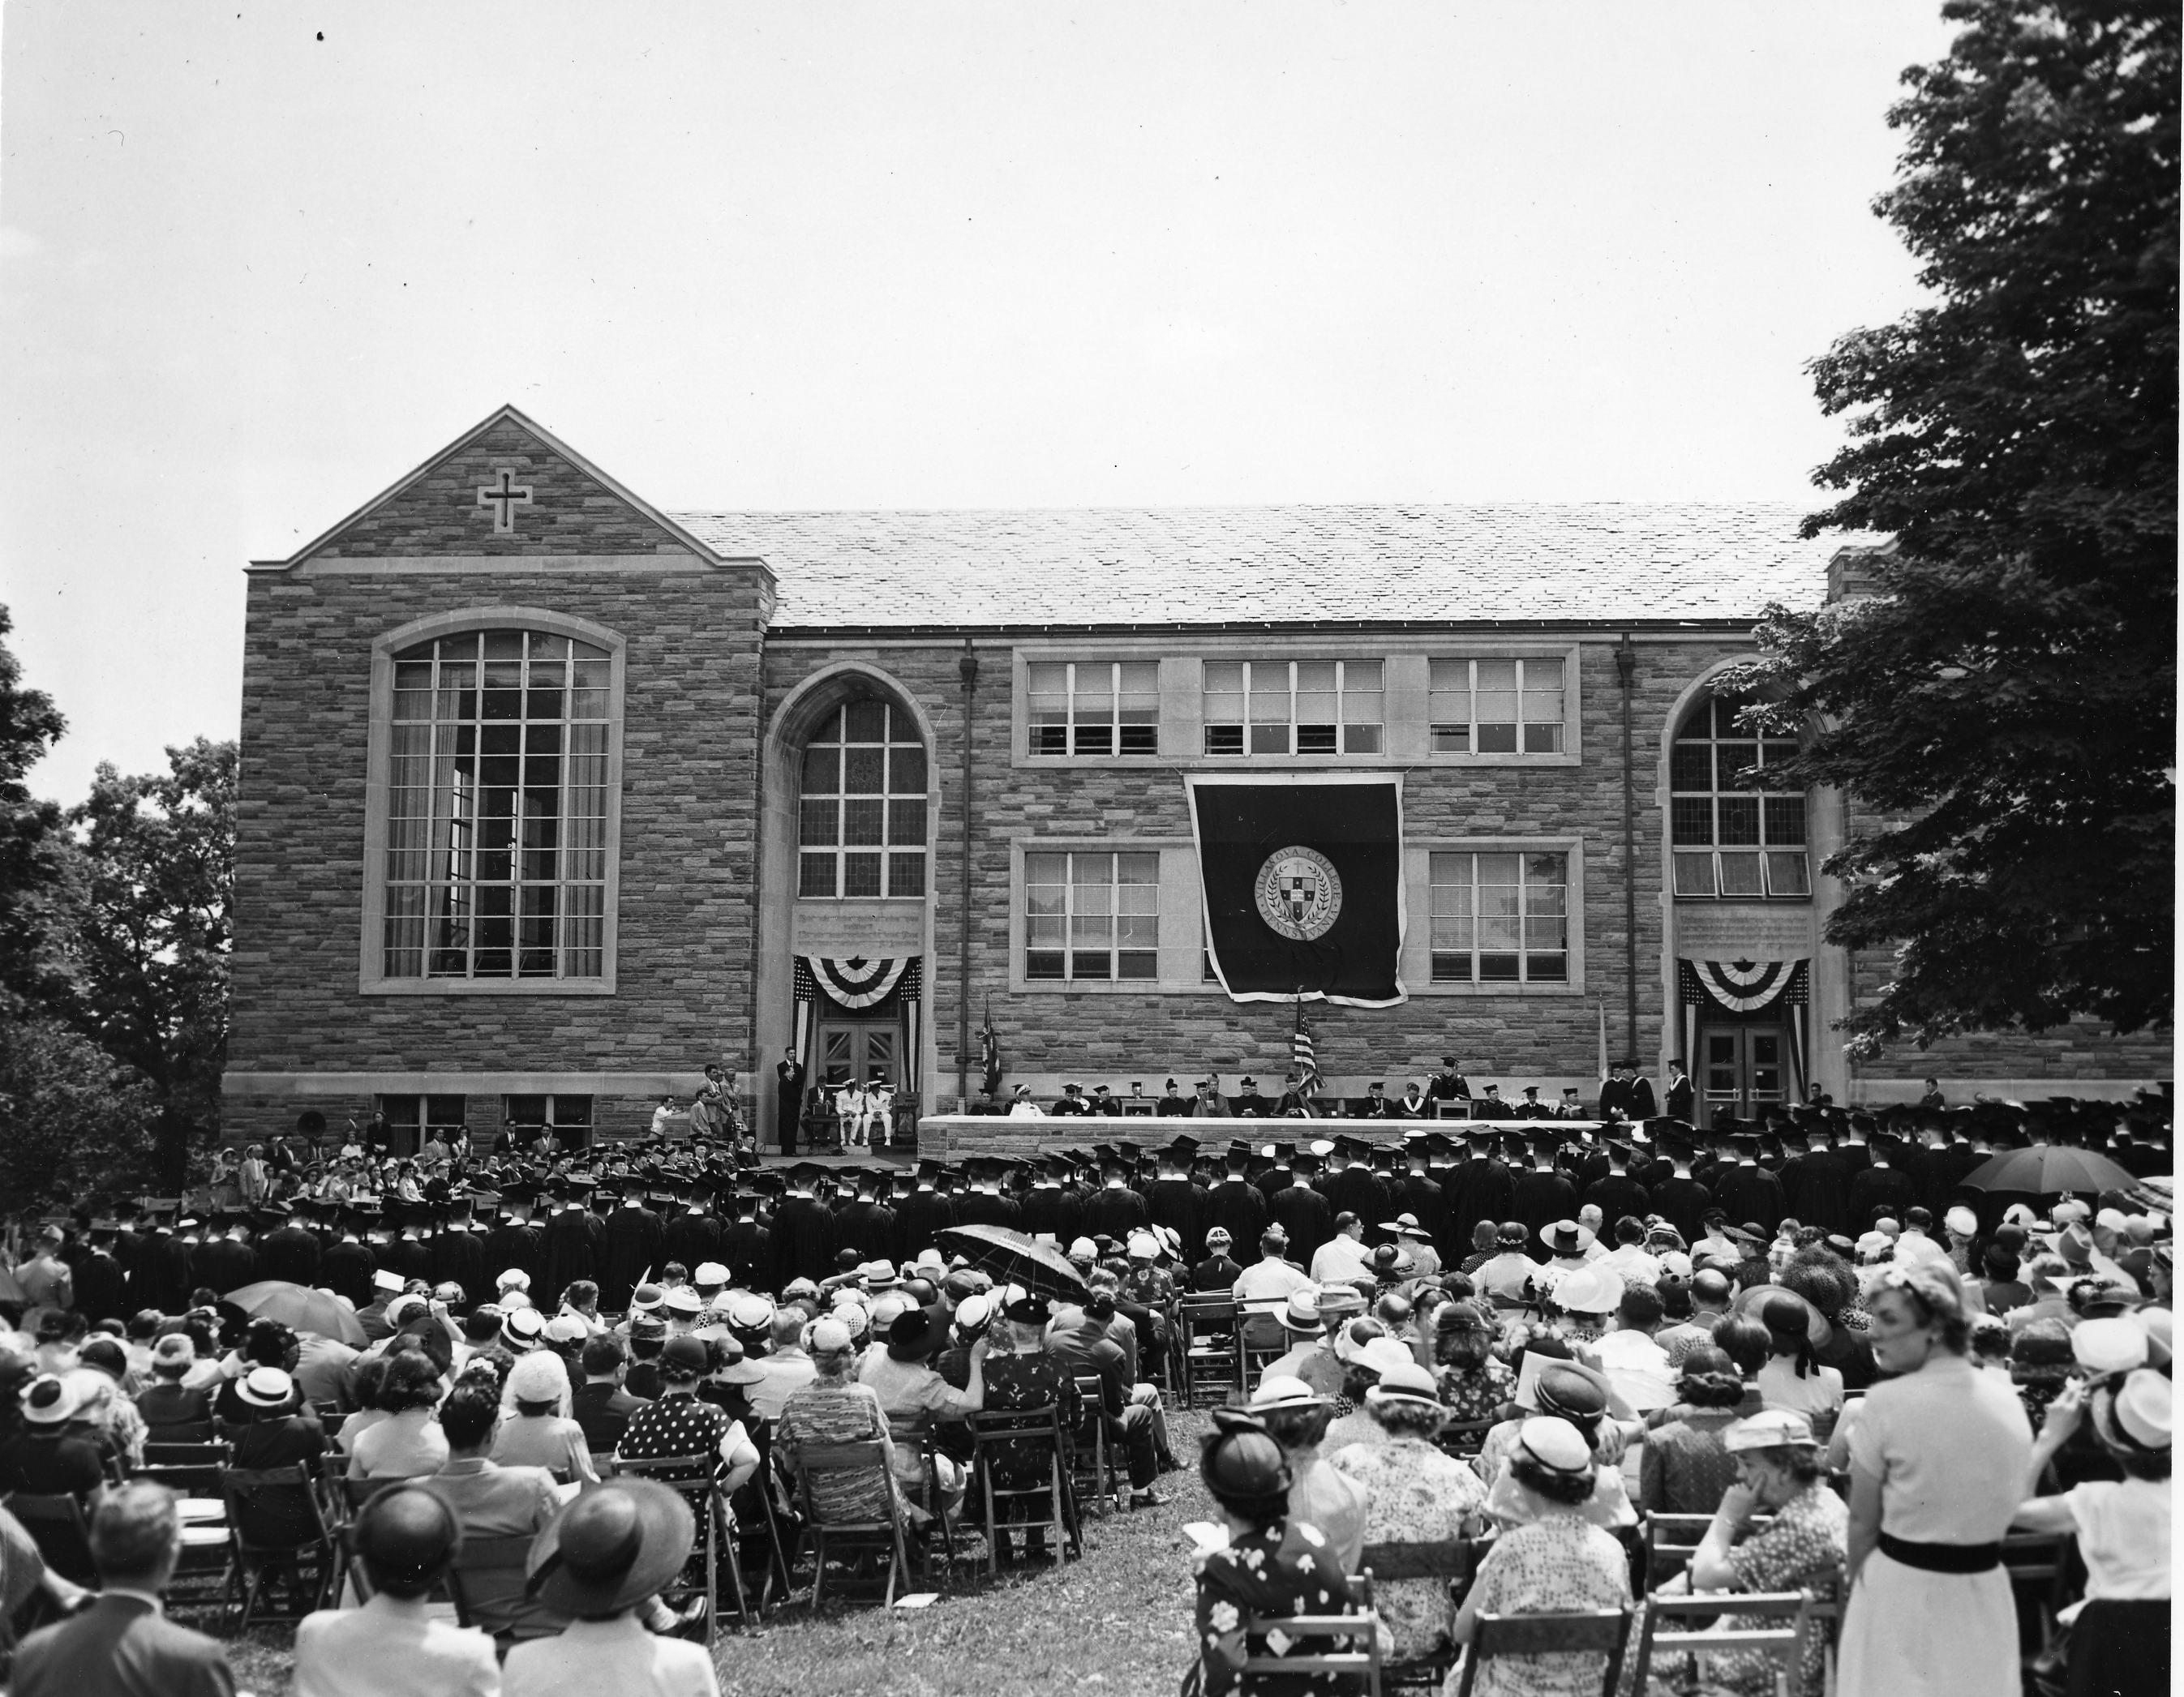 Commencement in front of the Villanova College Library, 4 June 1951